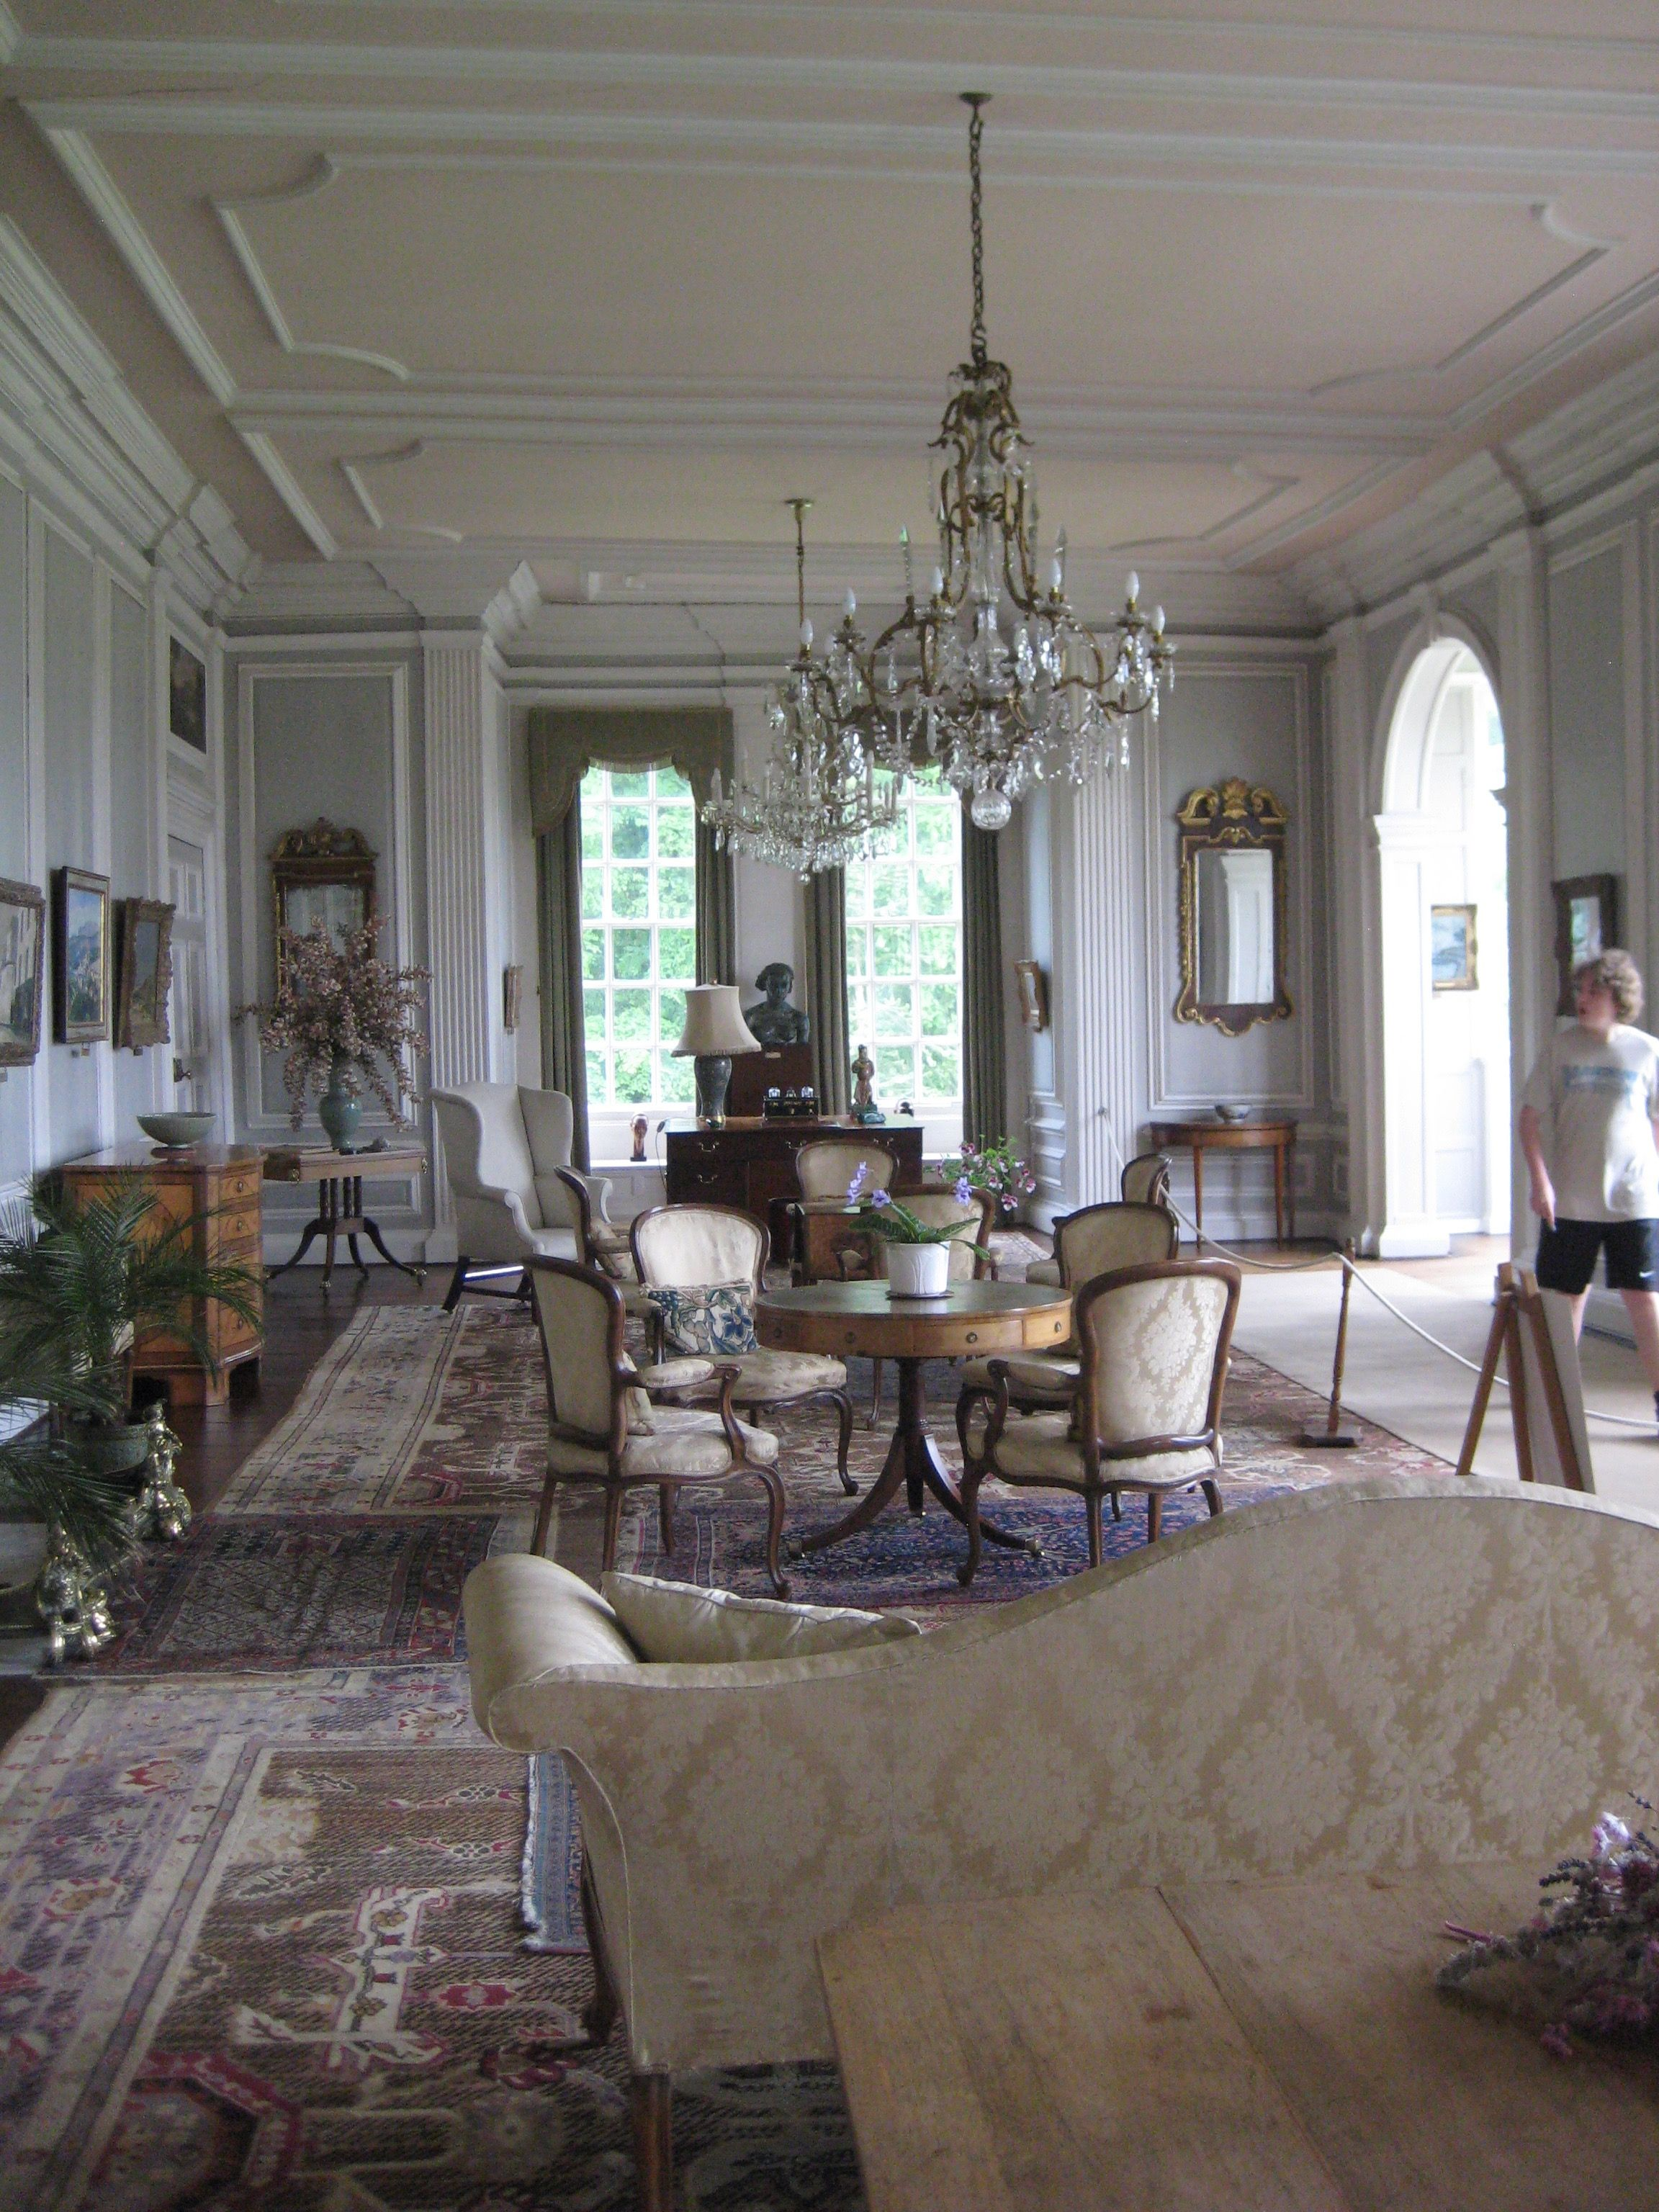 Inside House Drawing: English Country House Interior